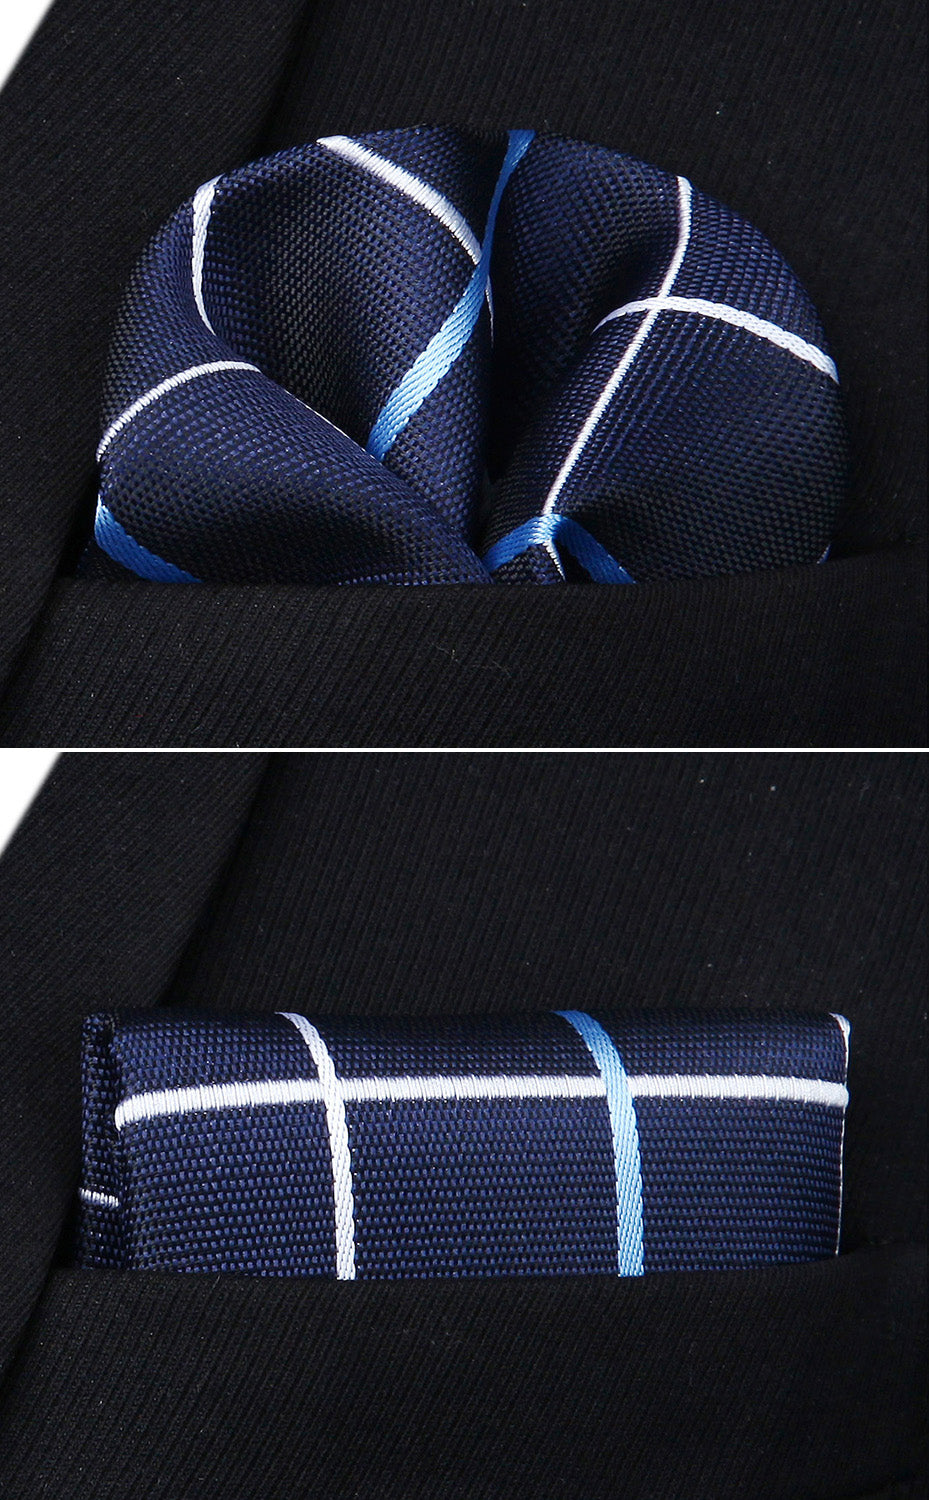 Fibre Optic Bow Tie and Pocket Square - SOPHGENT